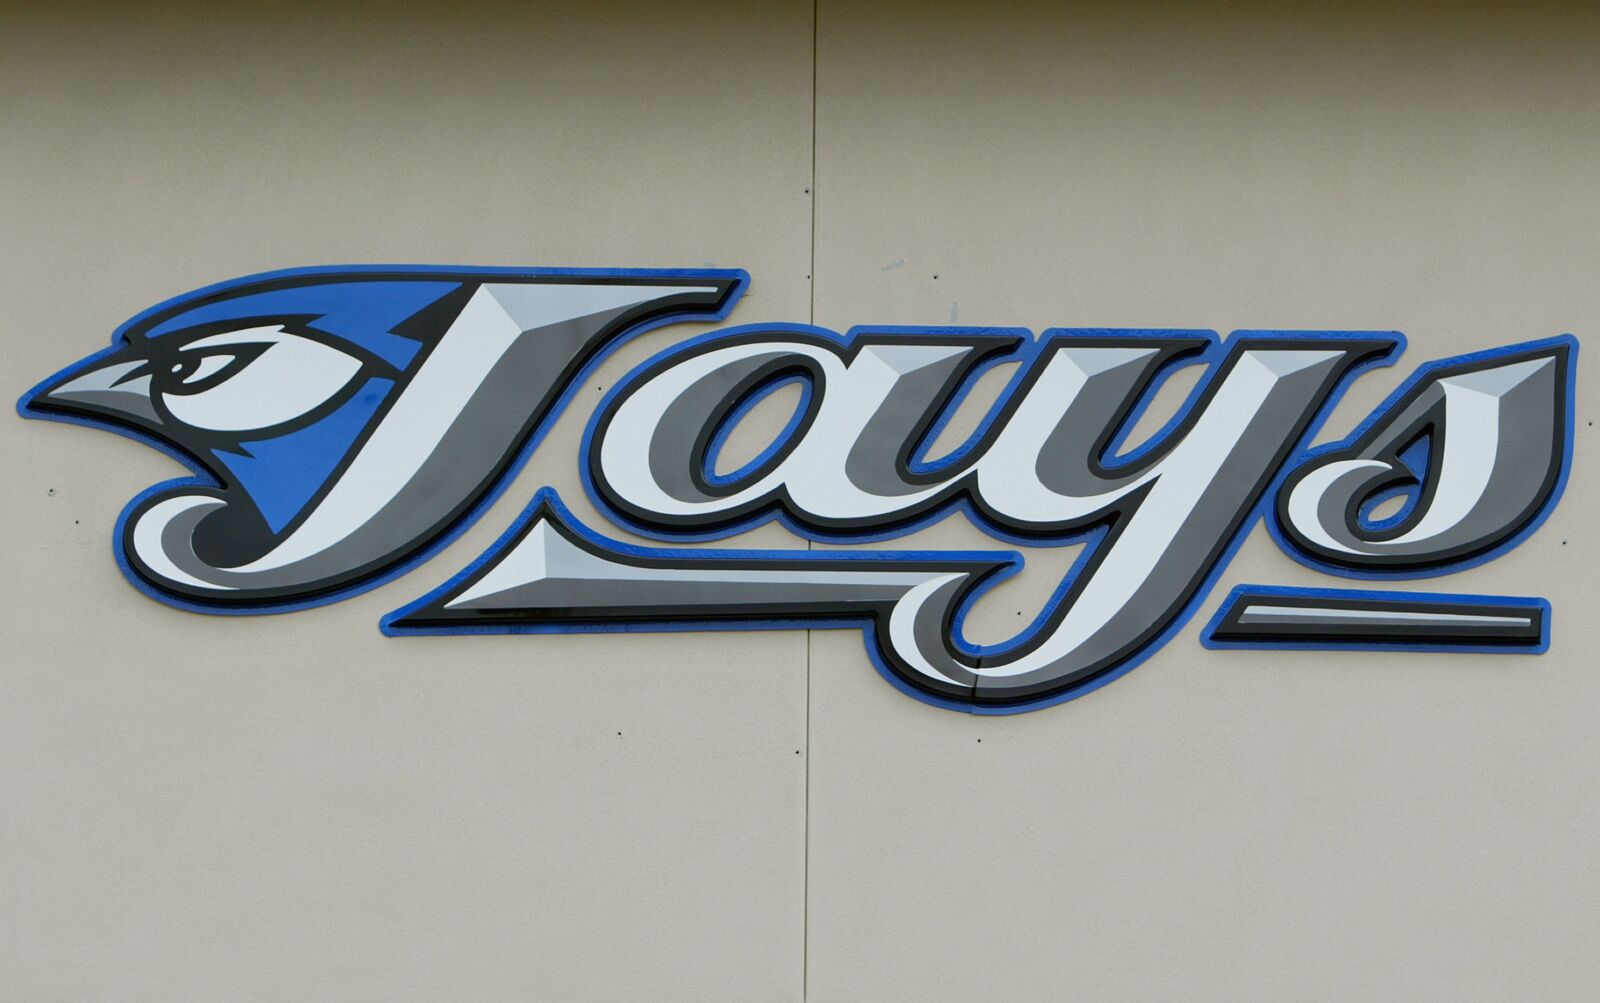 Blue Jays: Former player earns spot on Top 100 All-Time